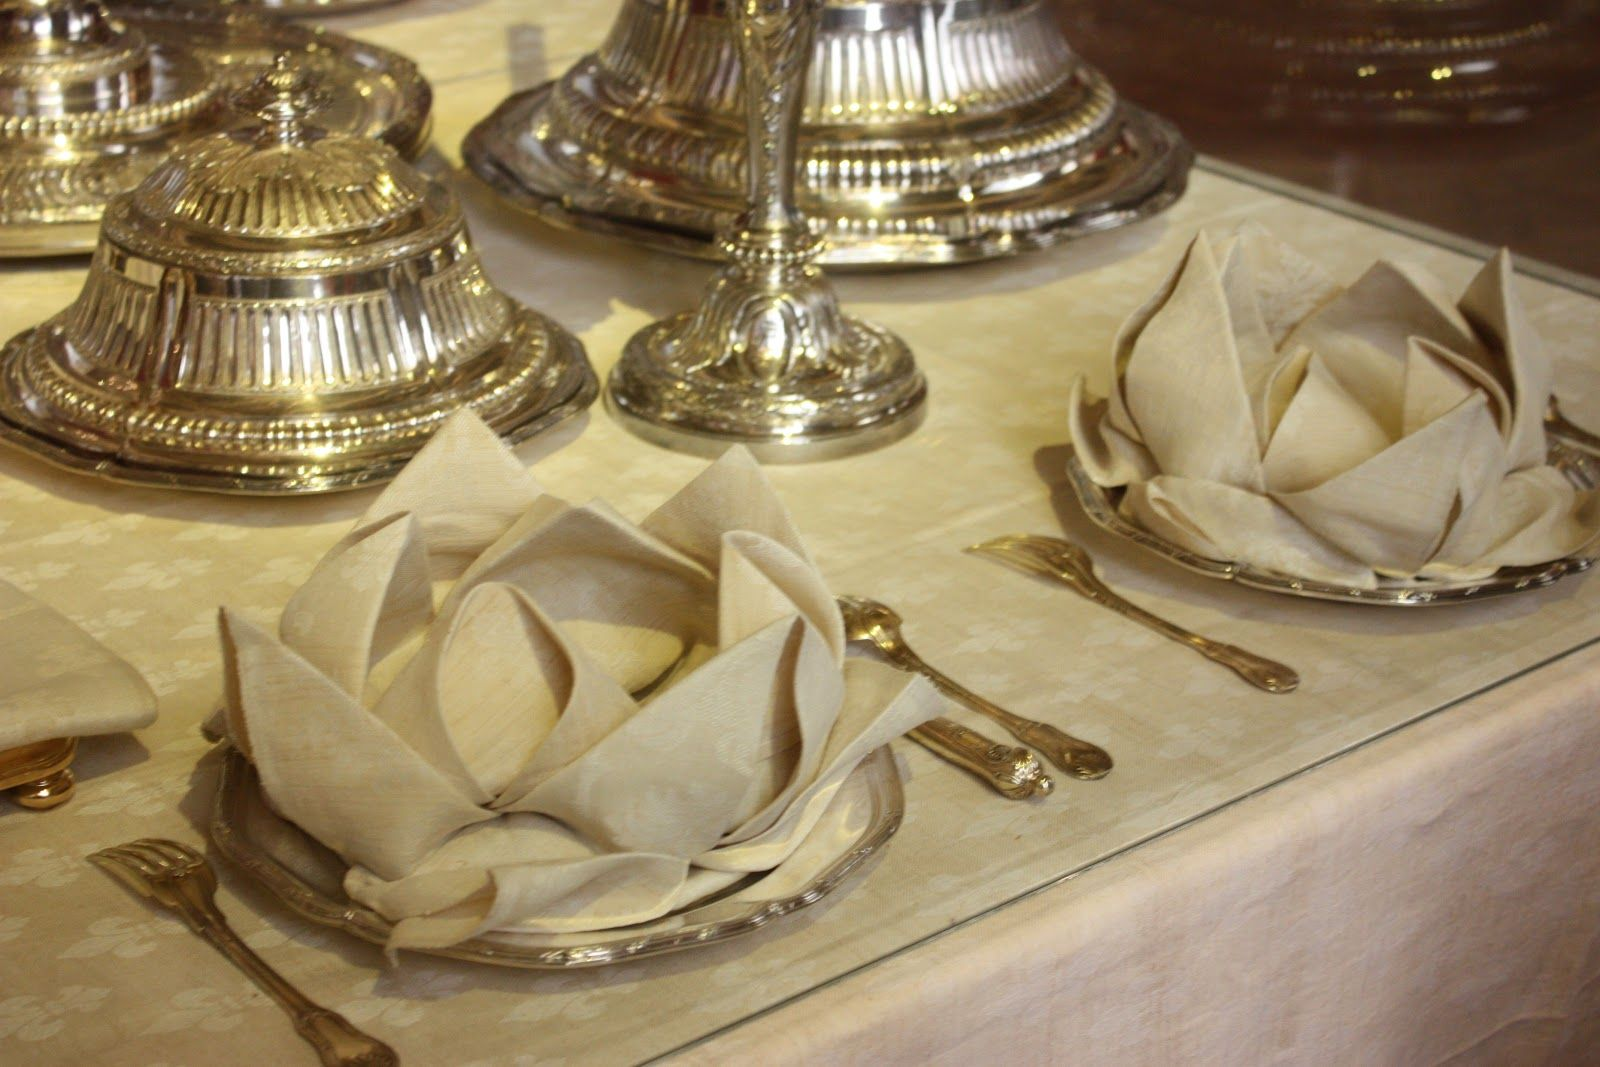 fancy napkin folding with ring - Google Search & fancy napkin folding with ring - Google Search | Napkin folding ...